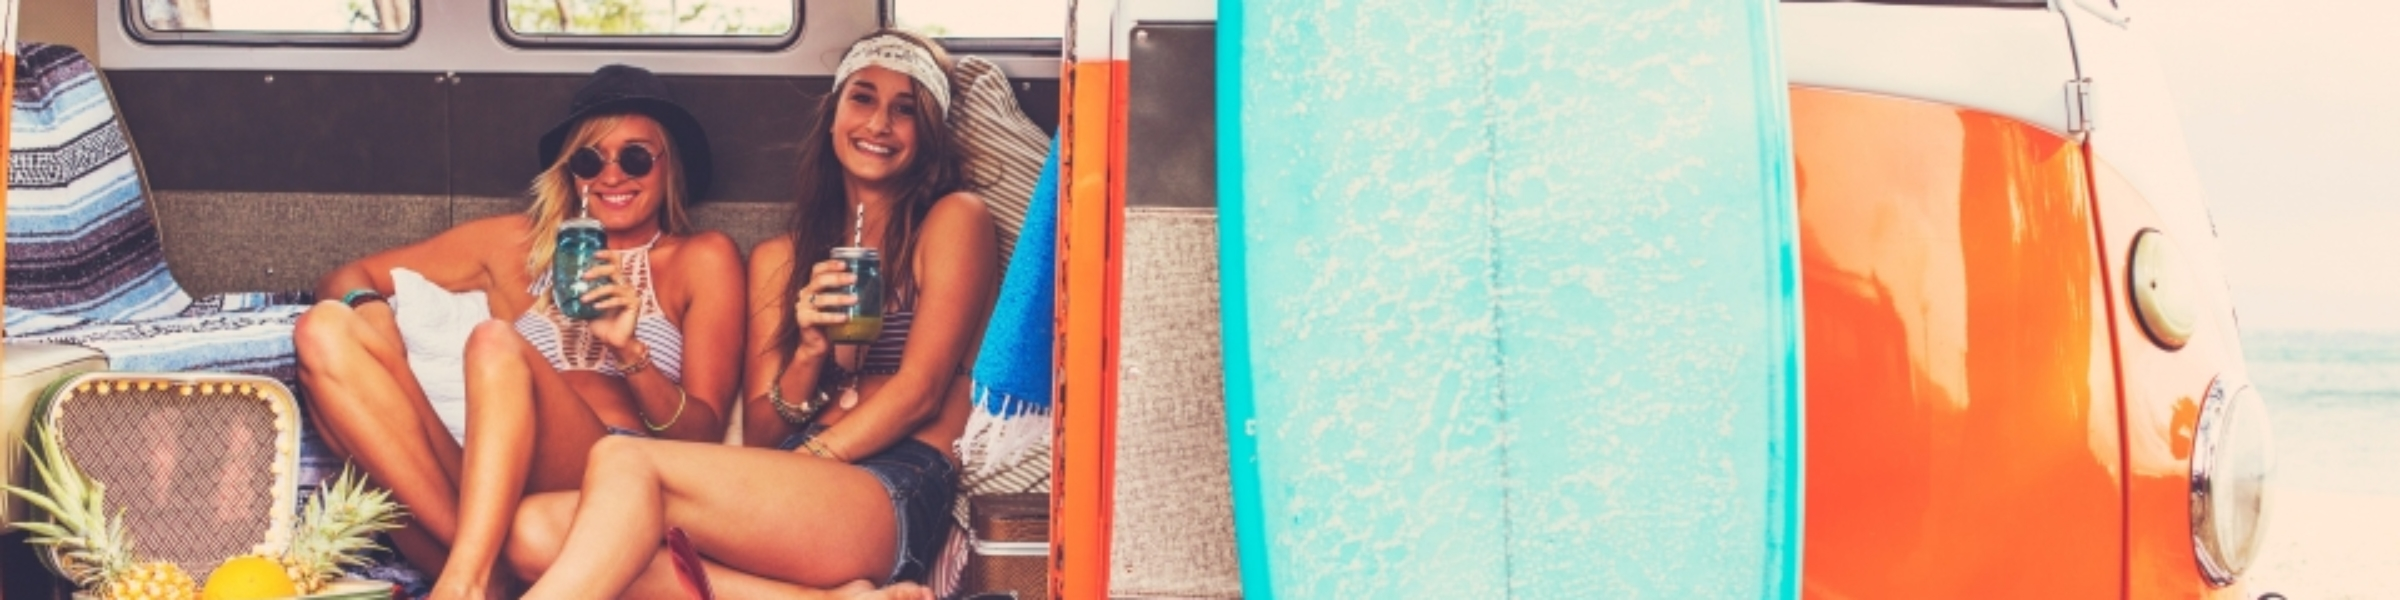 Surf-Board-Beach-VW-Van-Girls-960x300_c